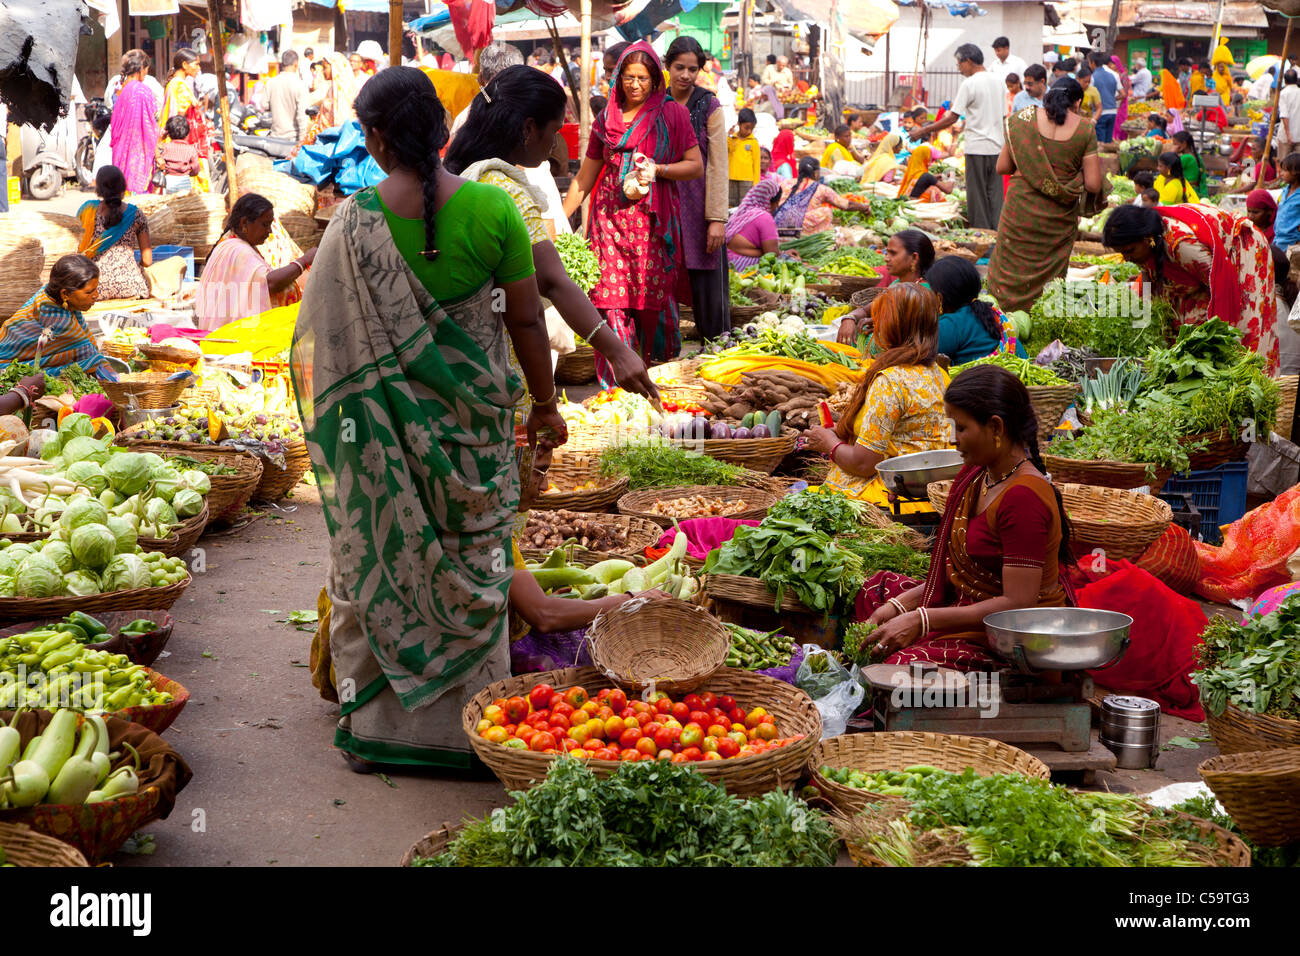 fruit and vegetables market in india Online vegetables market - find all types of indian vegetables online here  fresh vegetables online  right from fresh fruits, spices, dals, seasonings and.